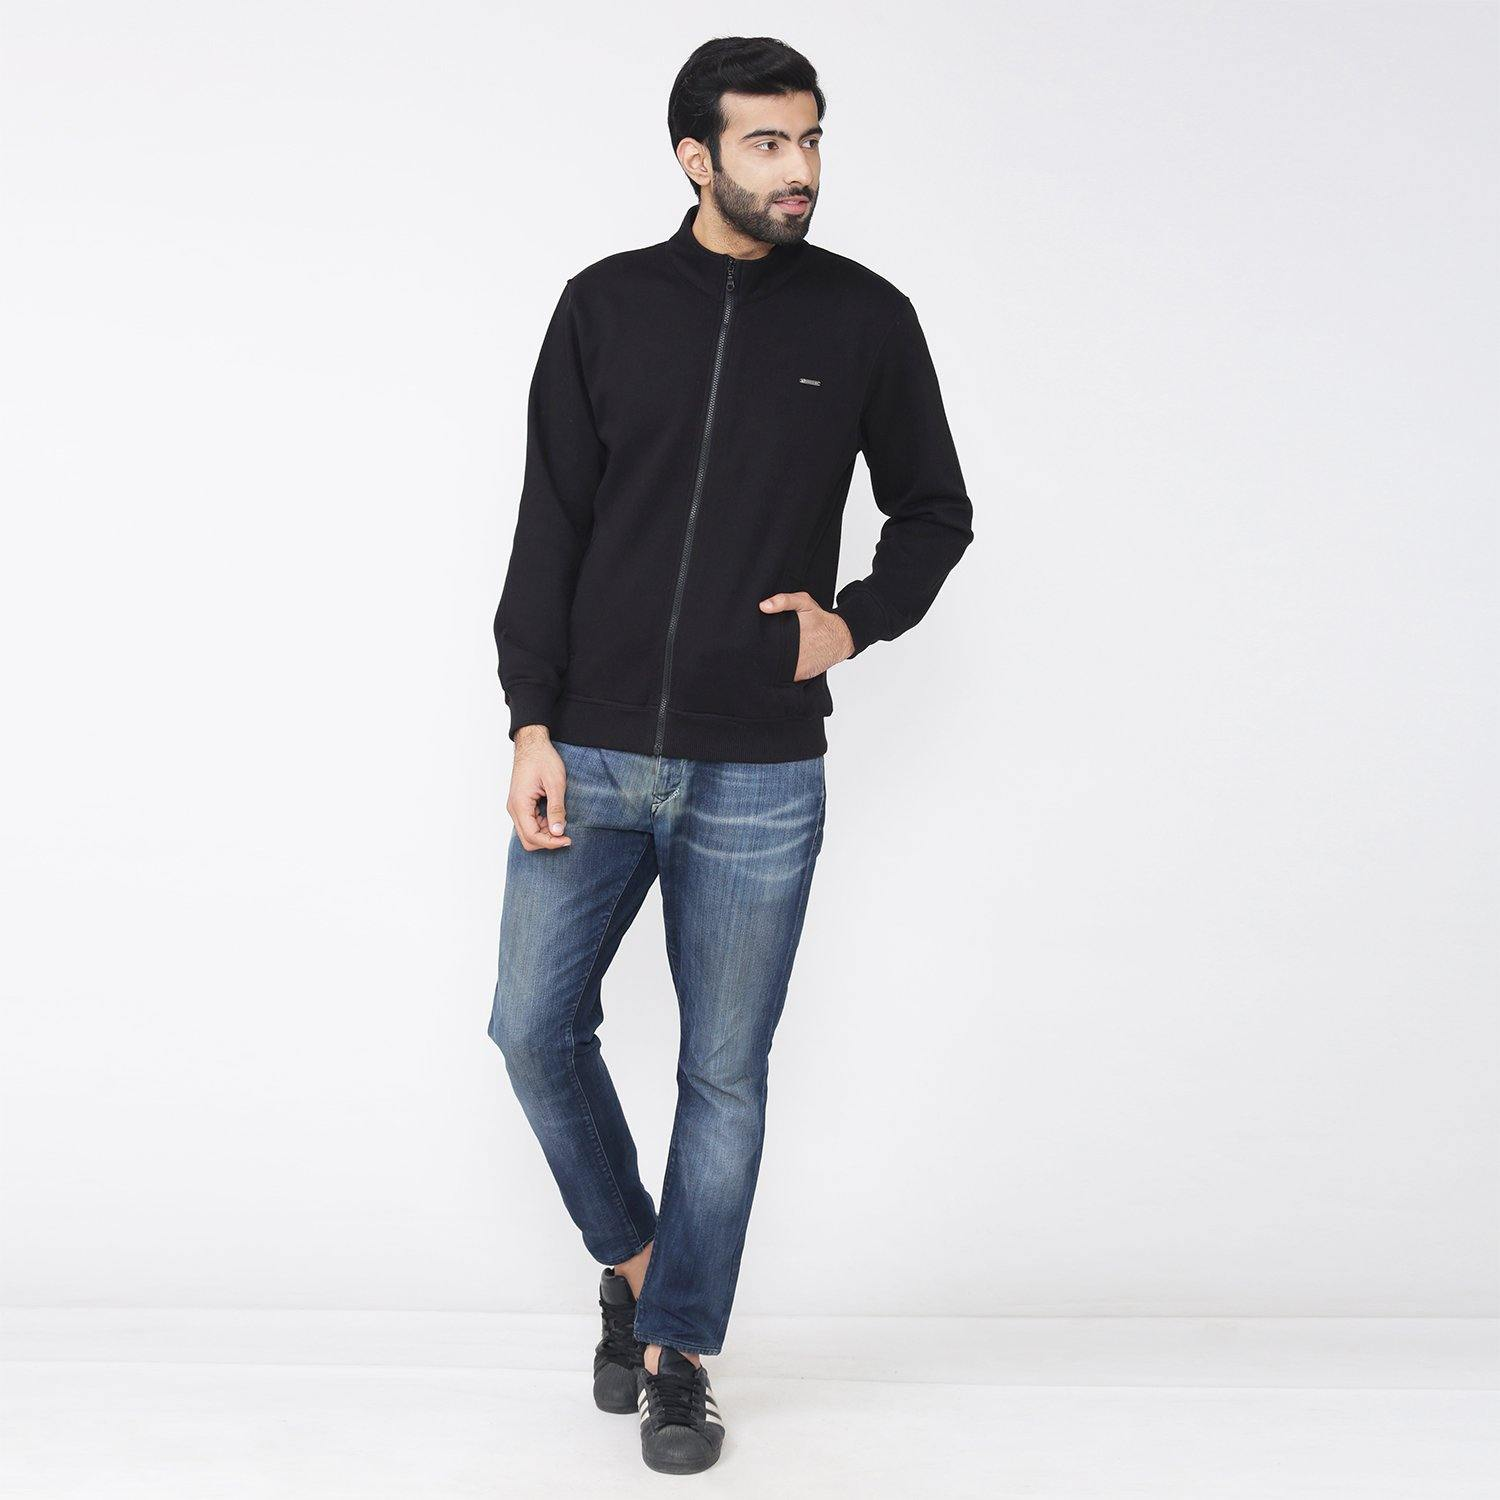 Men's Plain Full Sleeve Plain Jacket - Bonjour Group